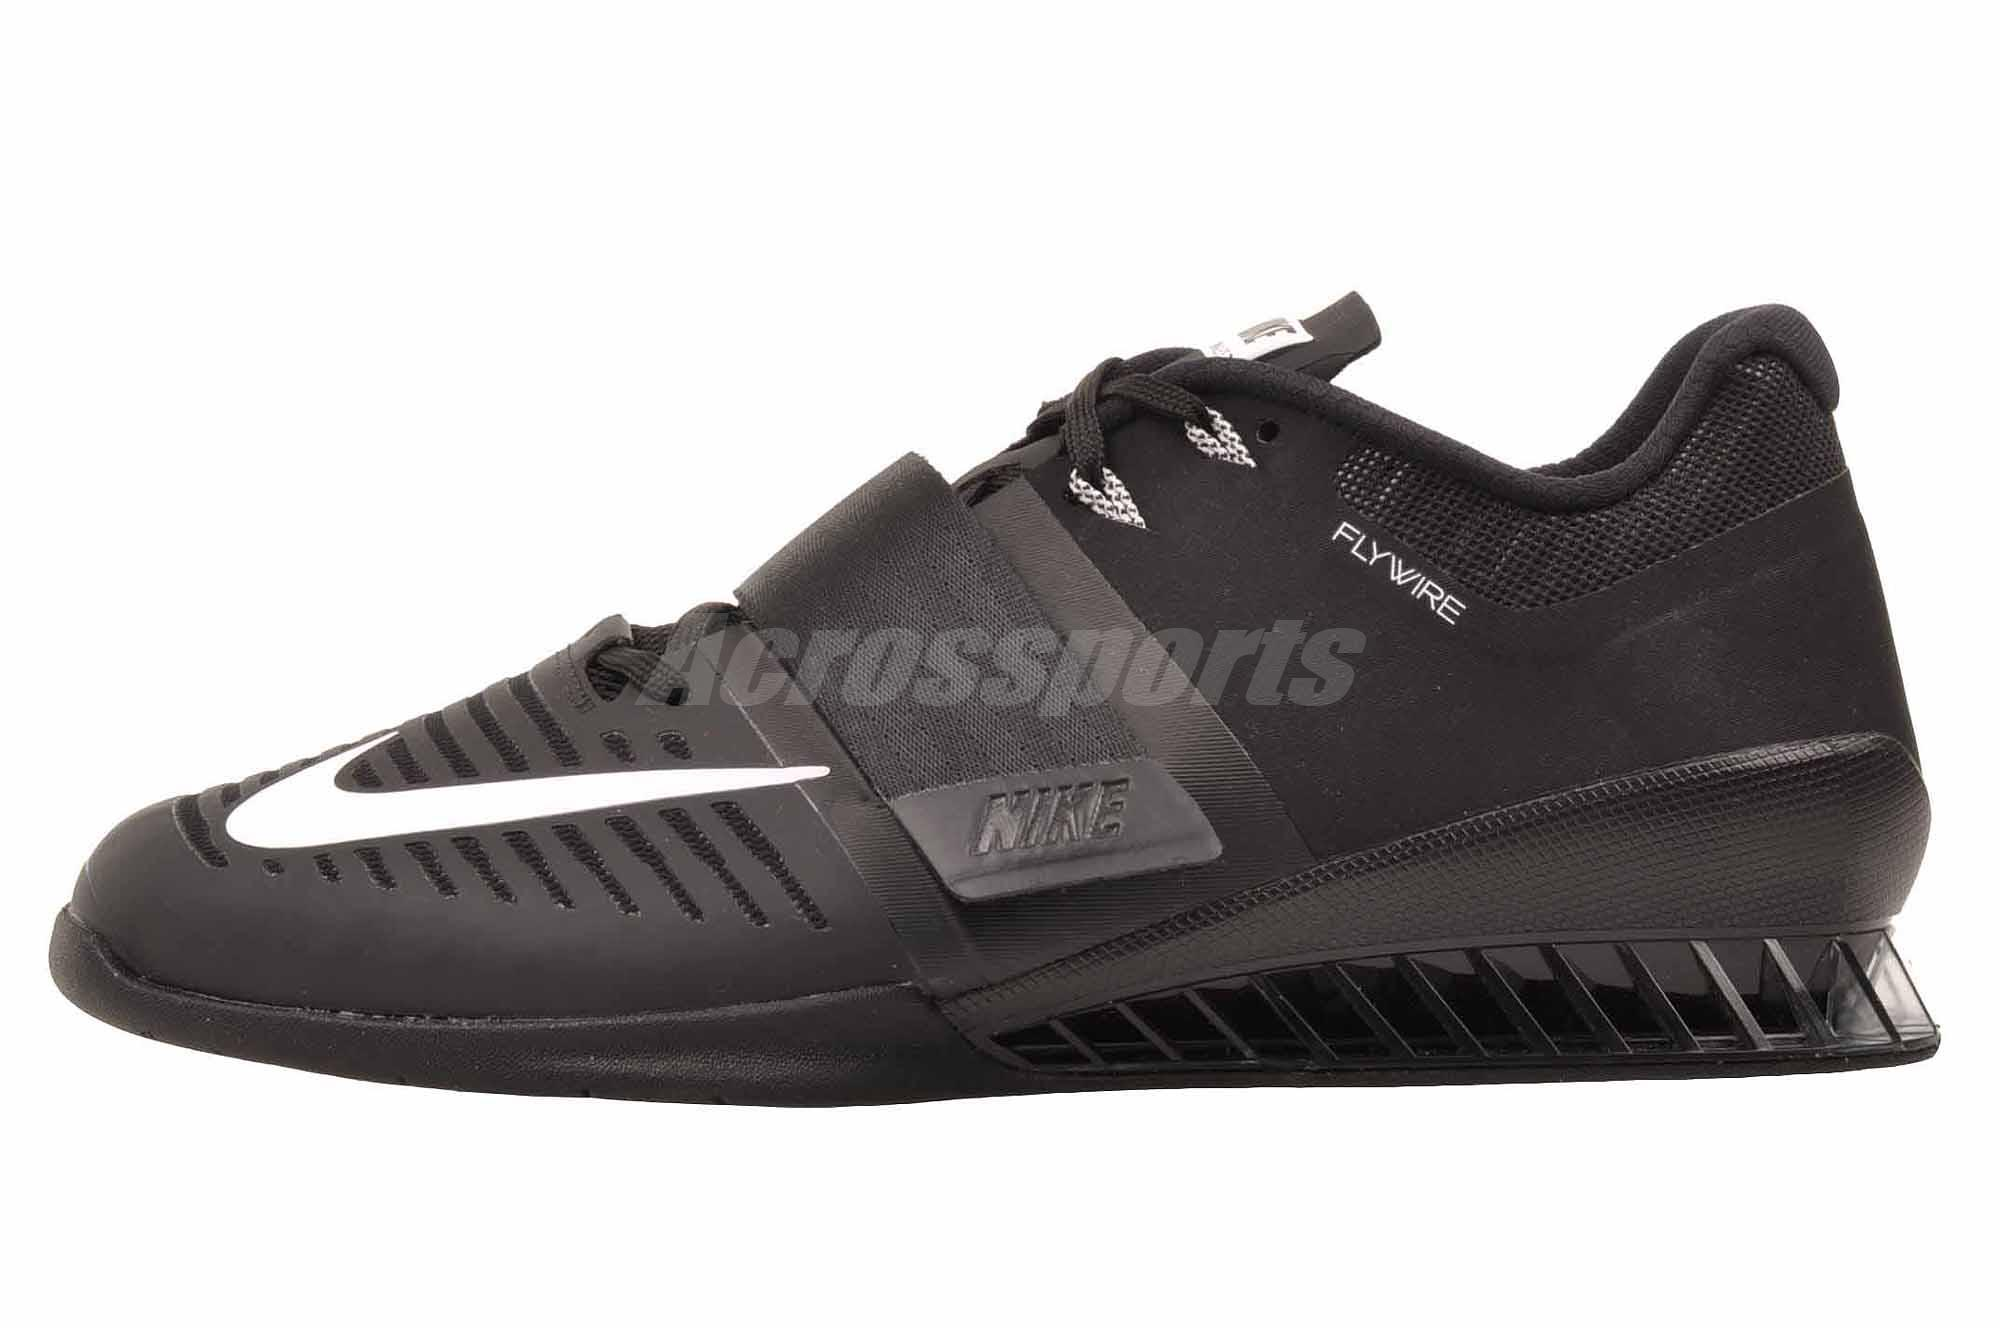 Details about Nike Romaleos 3 Cross Training Mens Weight Lifting Shoes  Black 852933-002 14851b97d